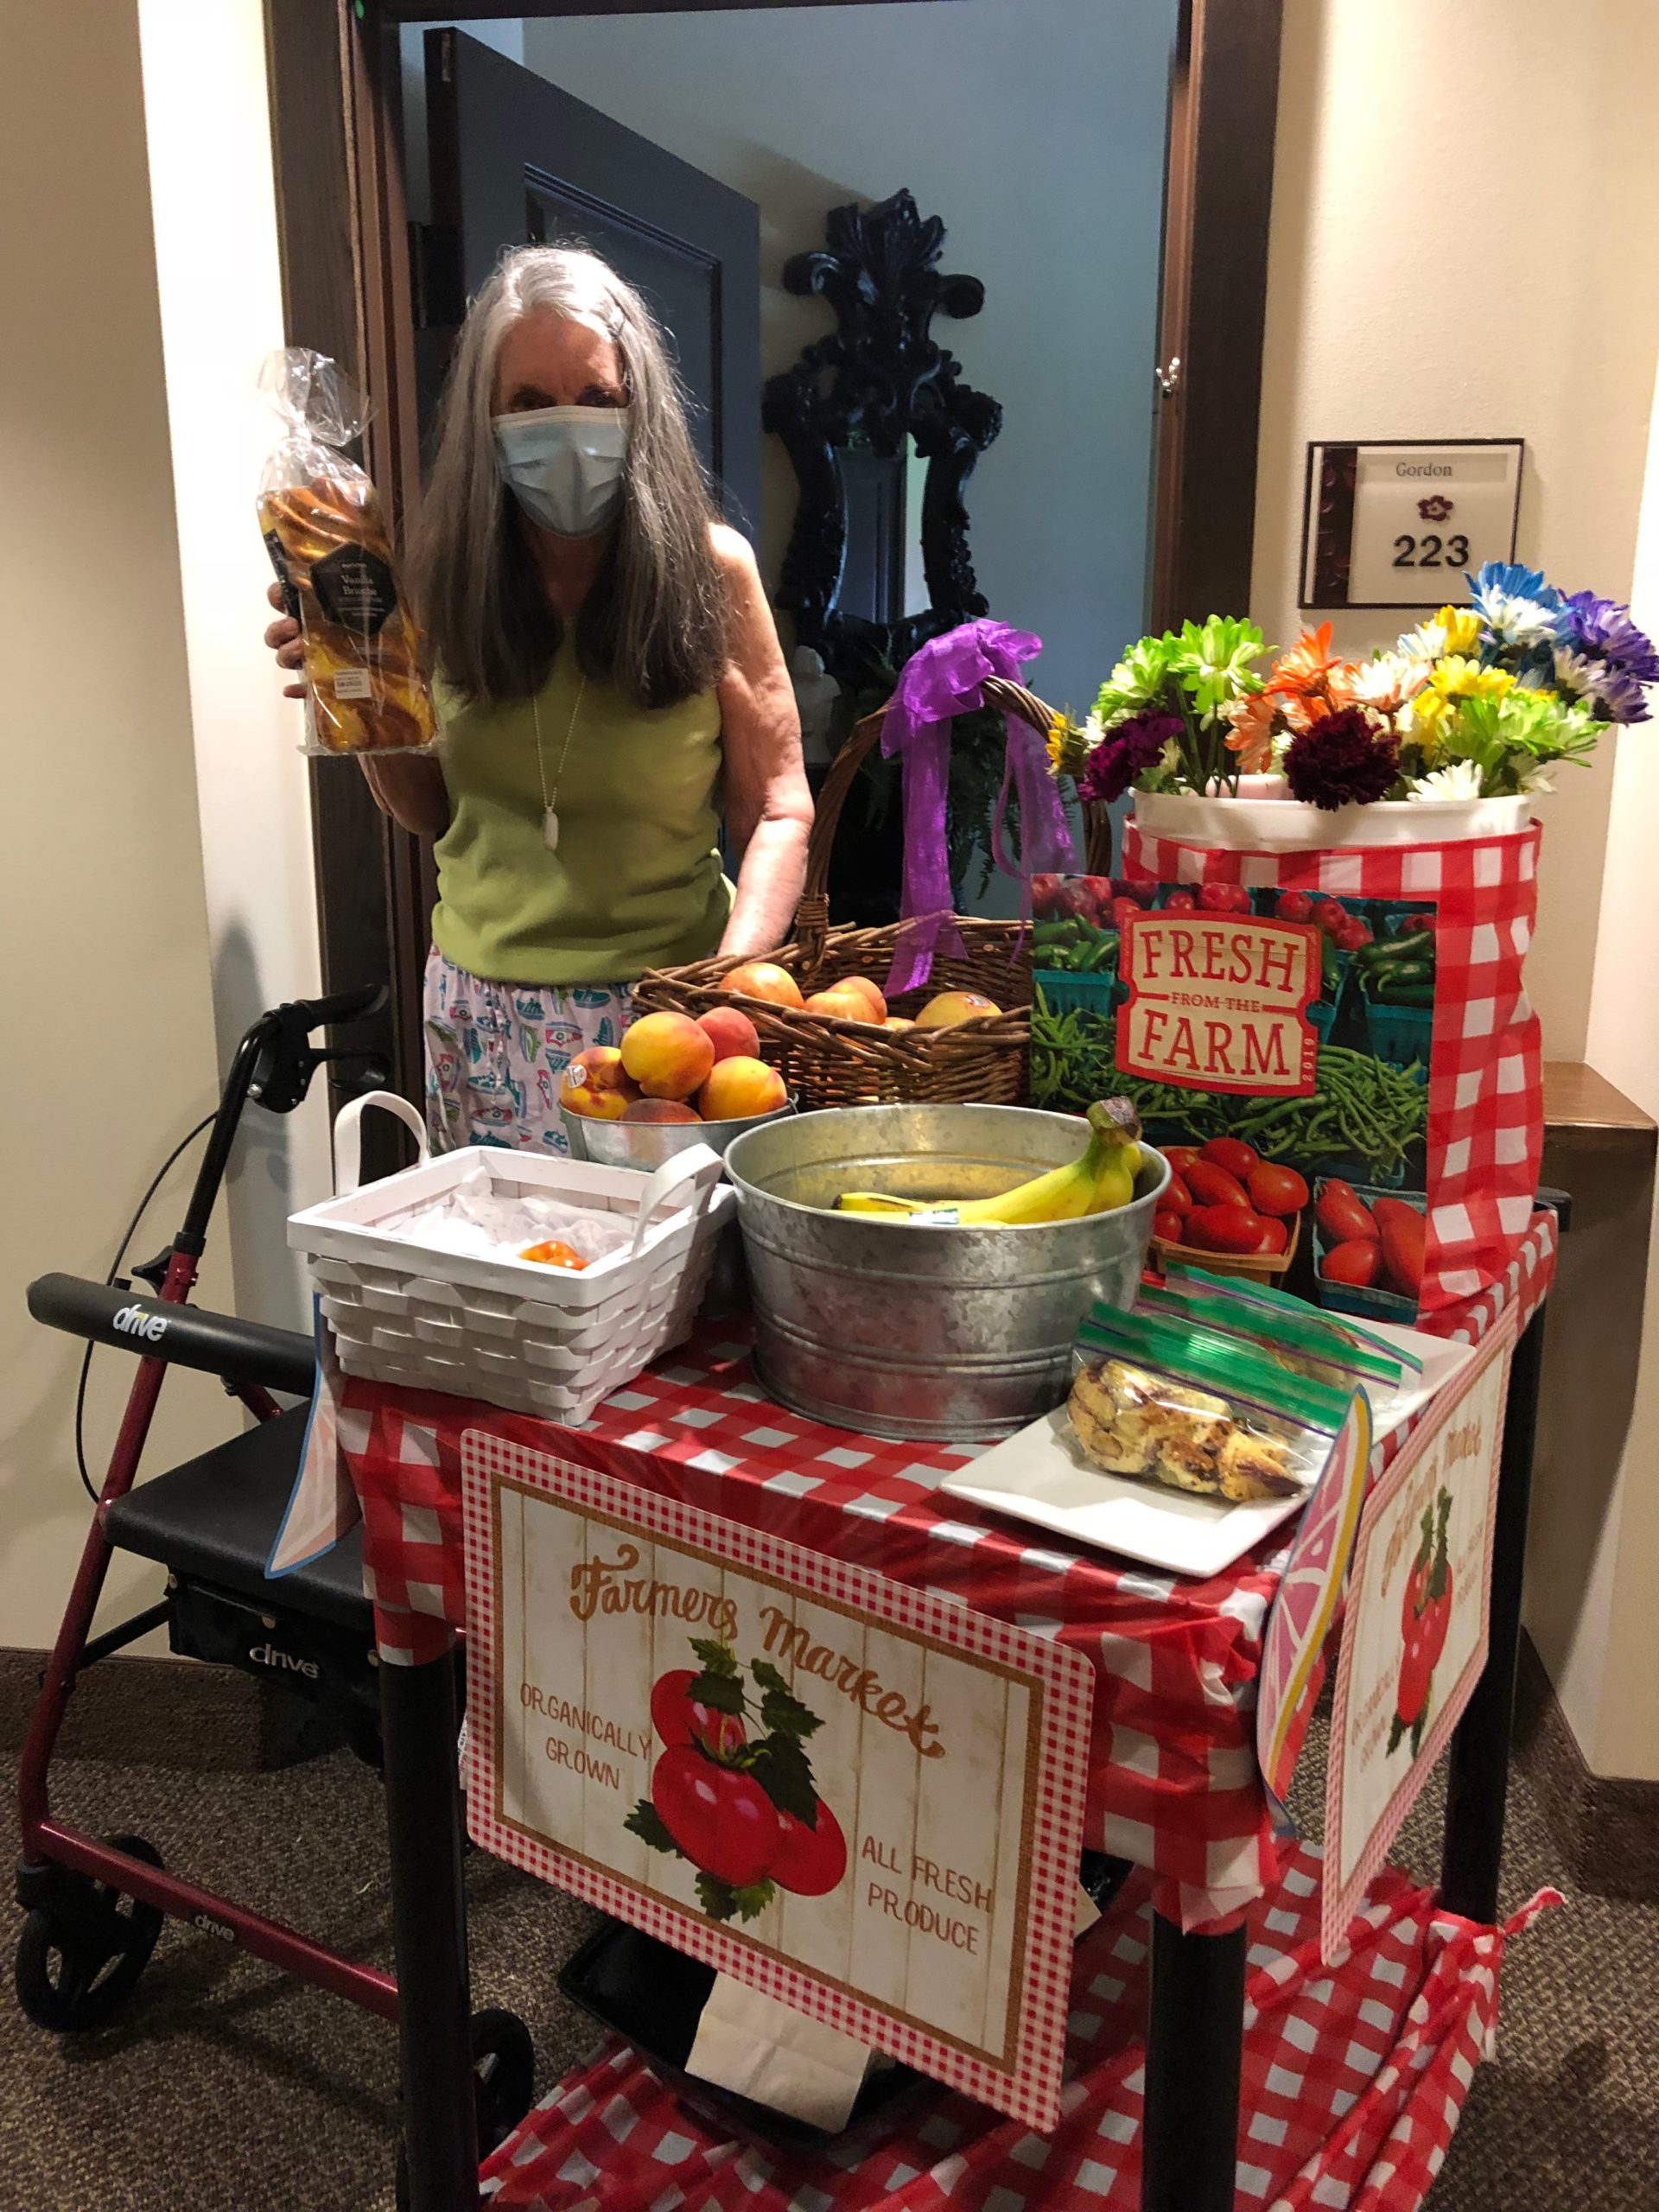 Rosemarie chooses colorful flowers and fresh produce from the Farmer's Market Cart! Residents were treated to a delicious lunch using local fruits and vegetables for a Farmer's Market themed day!